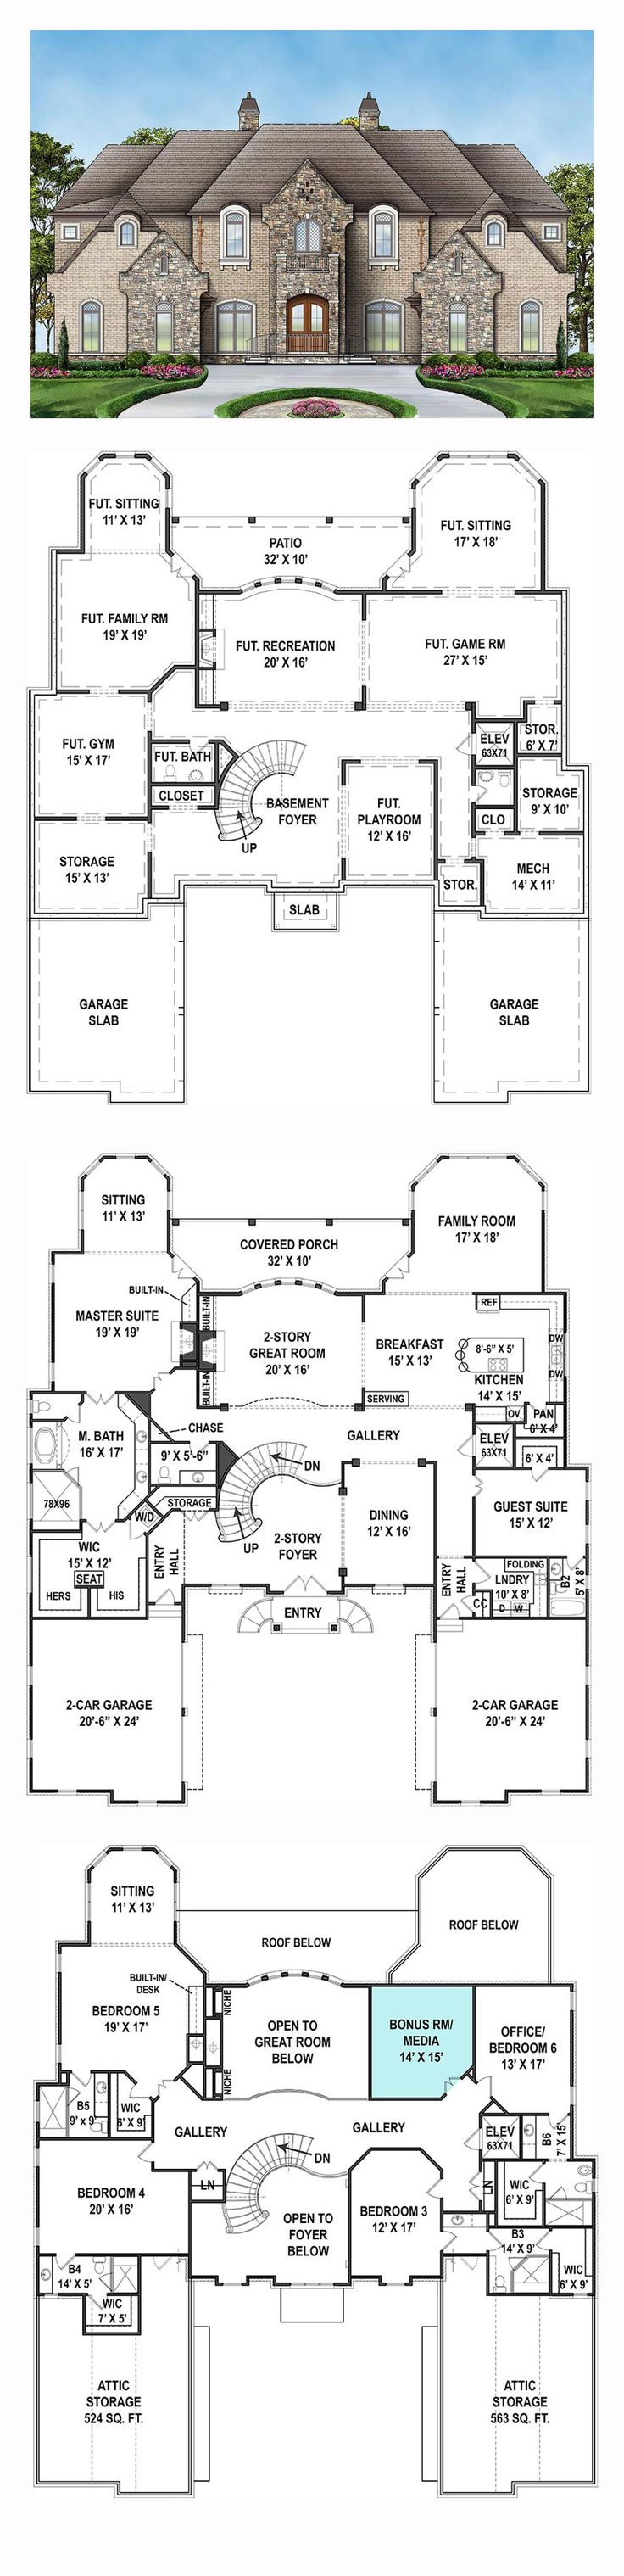 High End House Plans best 25+ dream house plans ideas only on pinterest | house floor